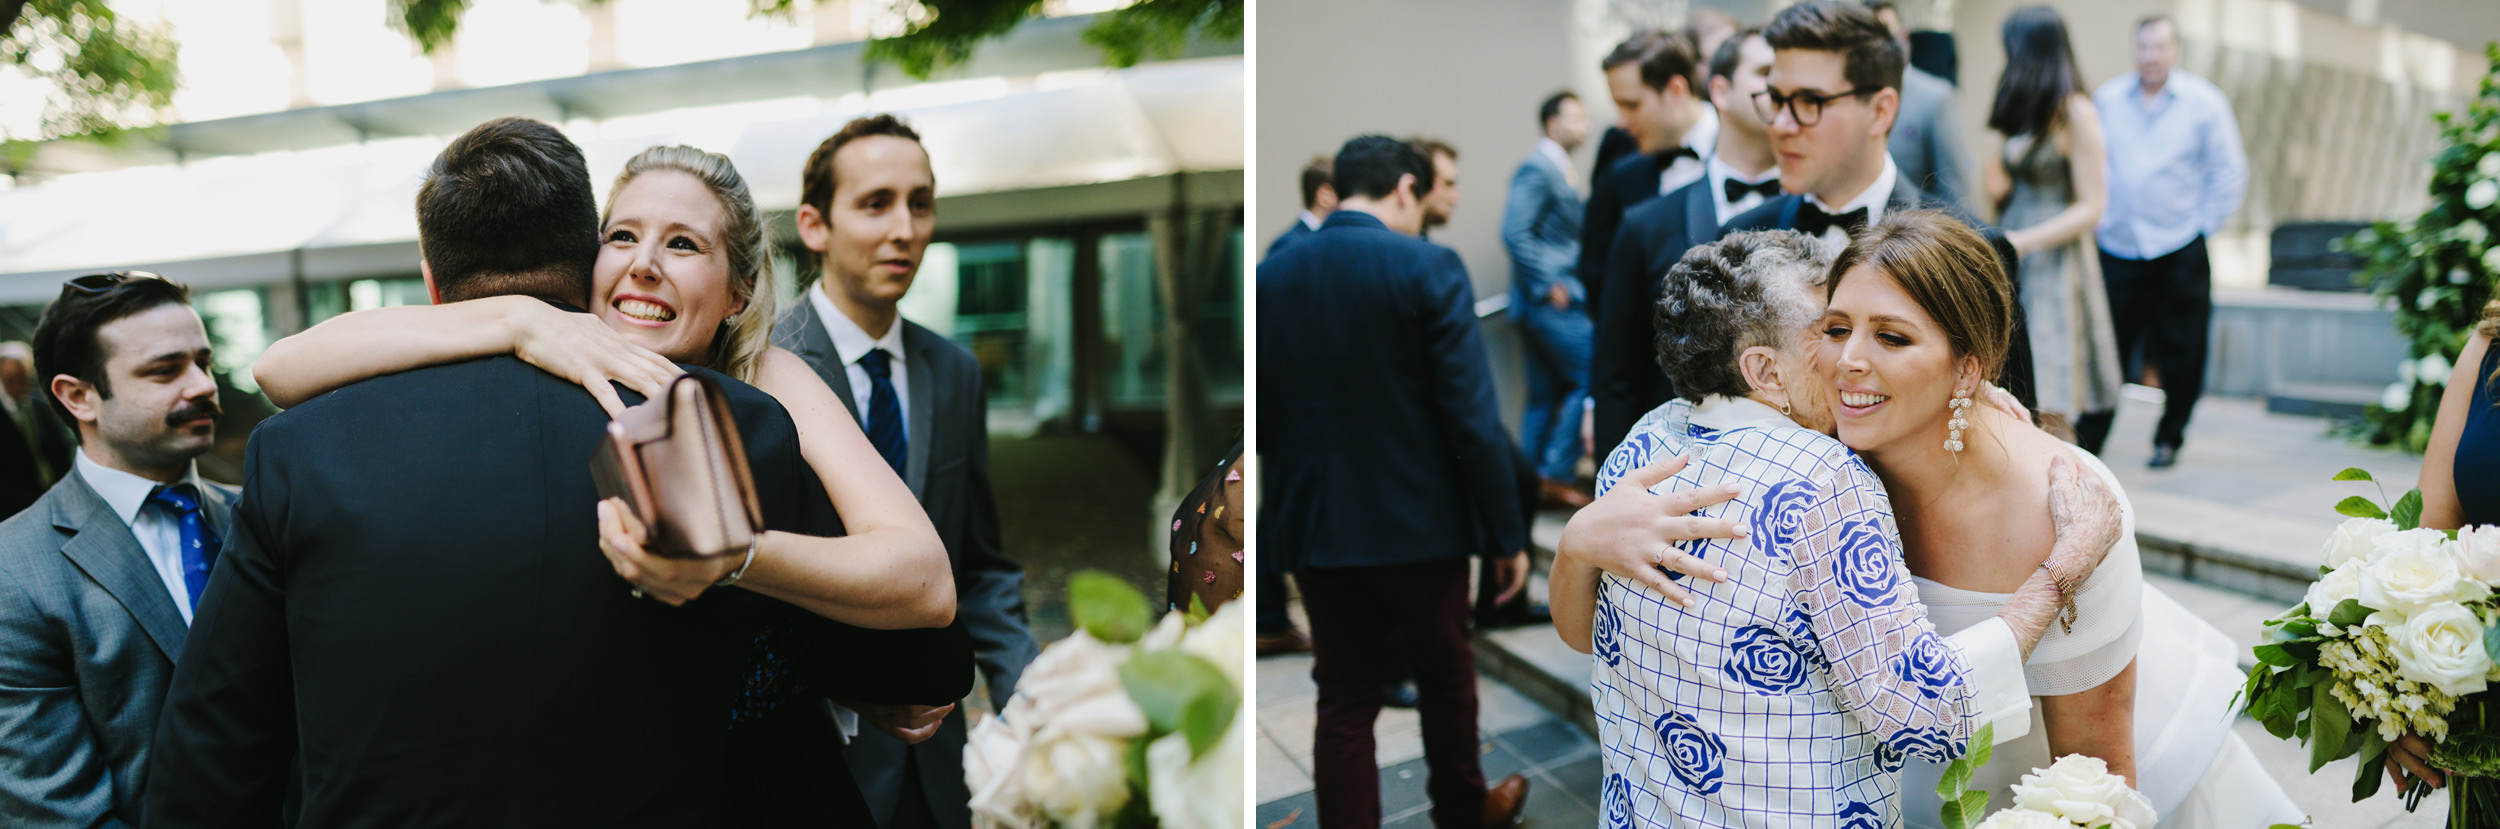 Melbourne_City_Rooftop_Wedding_Tyson_Brigette071.JPG